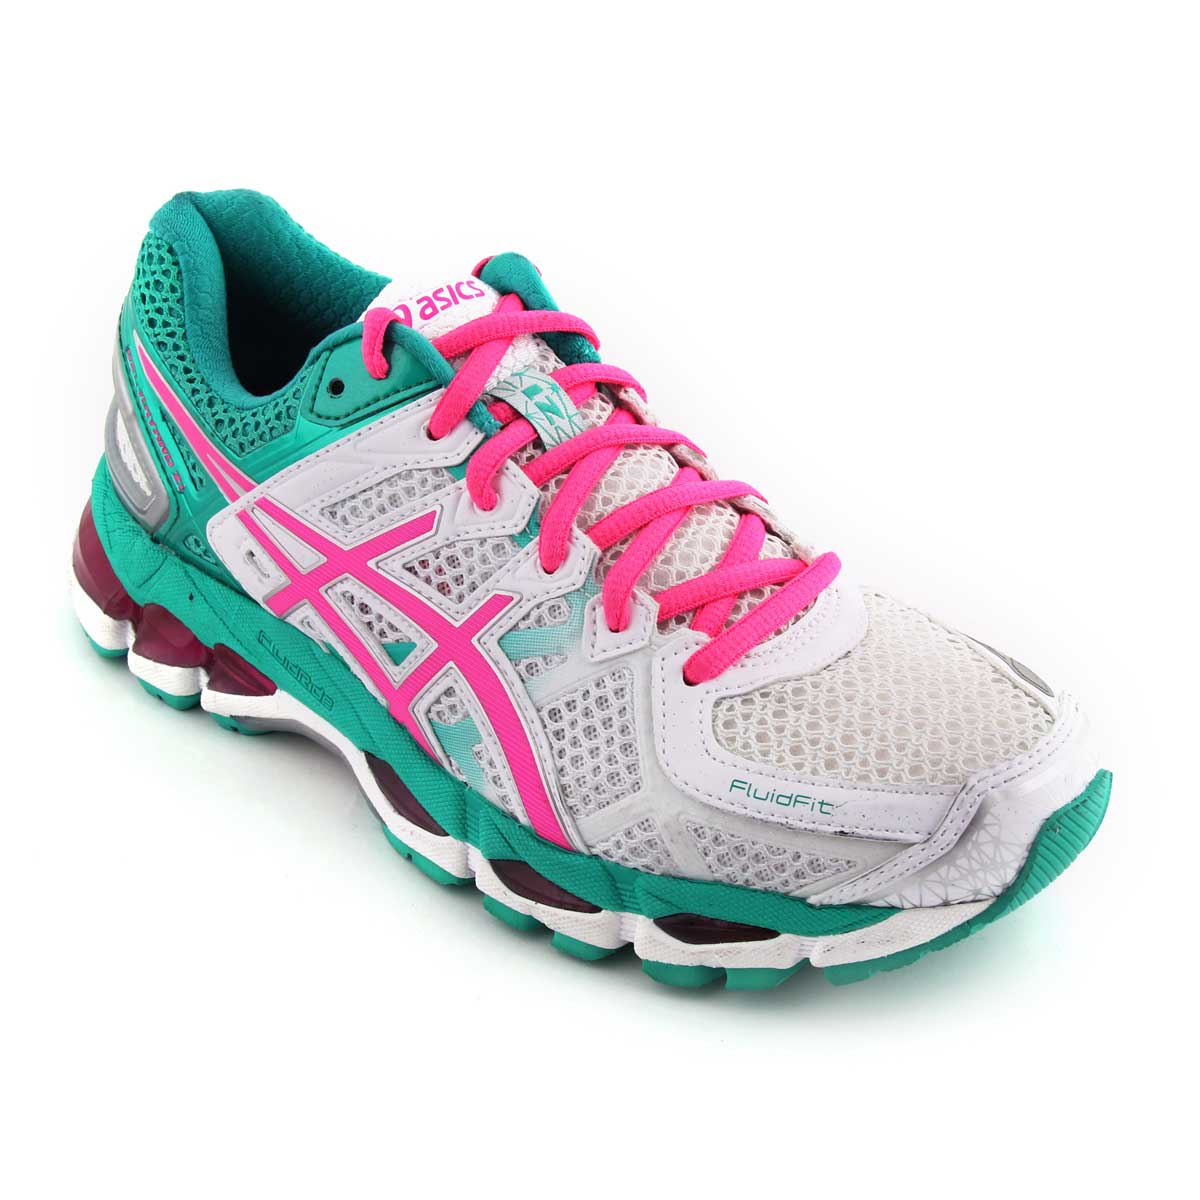 quality design 6f12b fcf75 Buy Asics Gel-Kayano 21 Women s Running Shoes (Hot Pink) Online